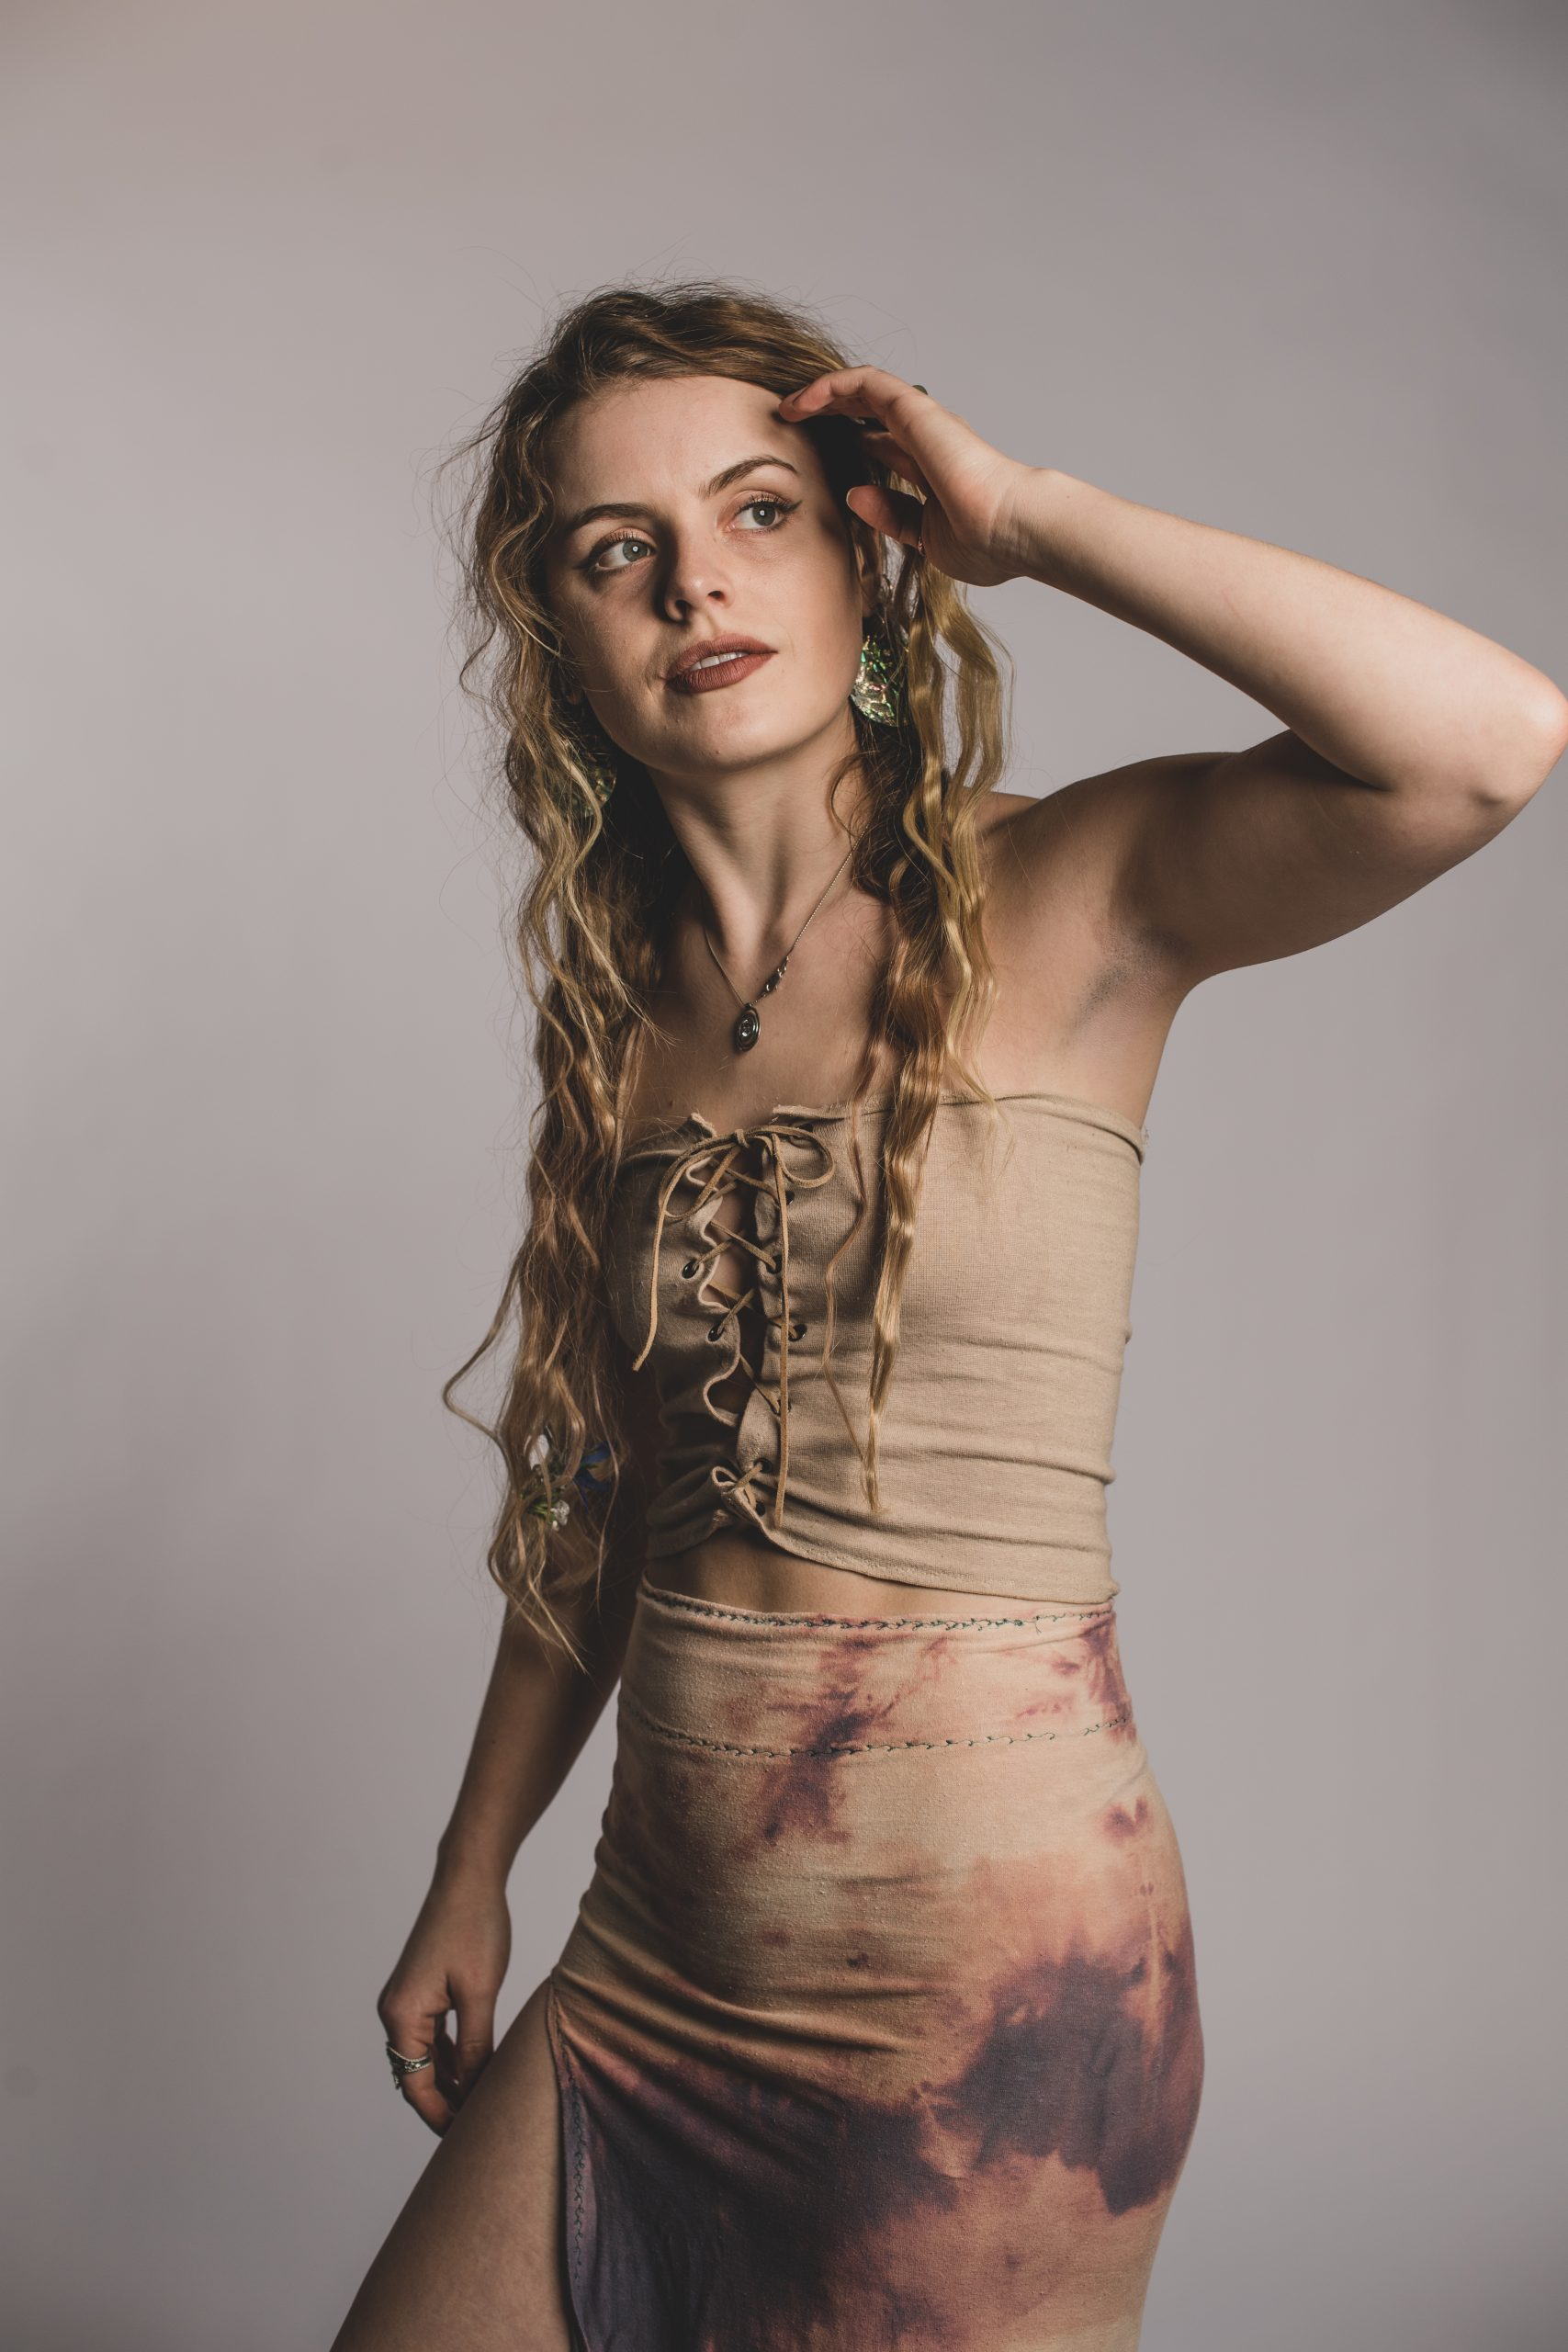 Lindsey Biondo joins me to talk about her new sustainable slow fashion line called Violet Revolt. Each piece is hand sewn, on certified organic plant fabrics that have been naturally dyed. A portion of proceeds goes to help Wildlife Conservation.